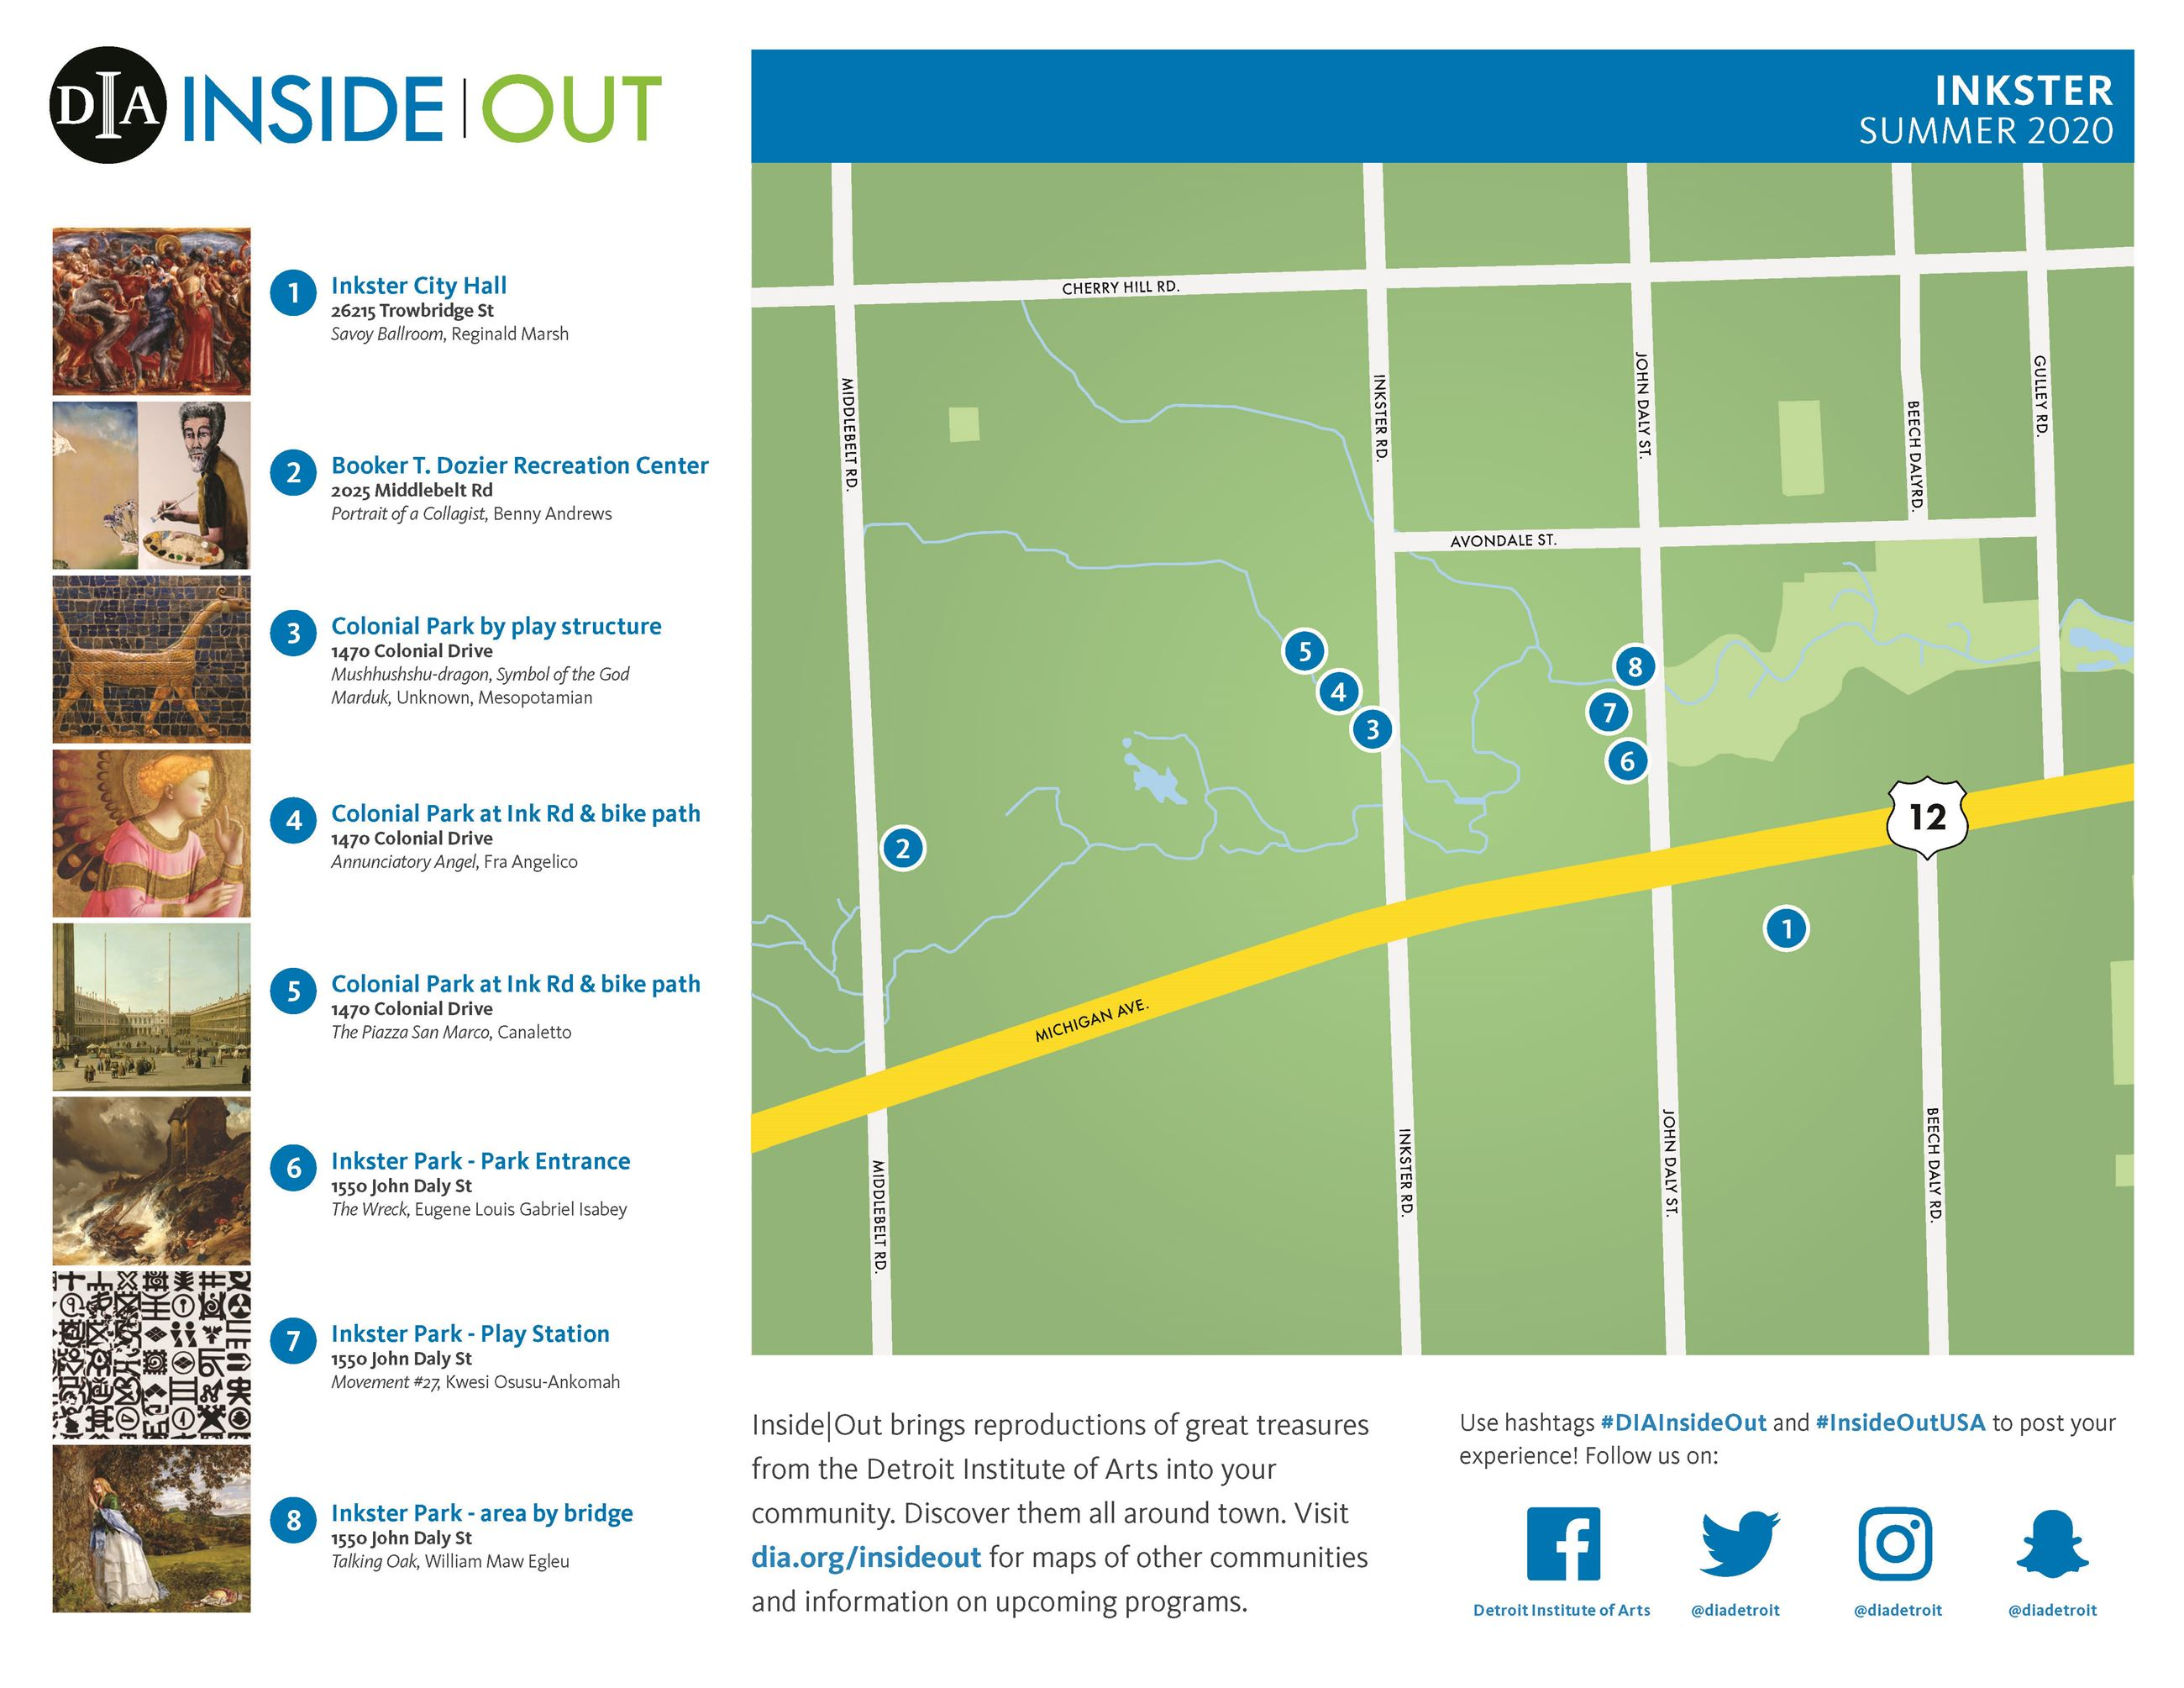 31134 DIA Inside Out Inkster Flier